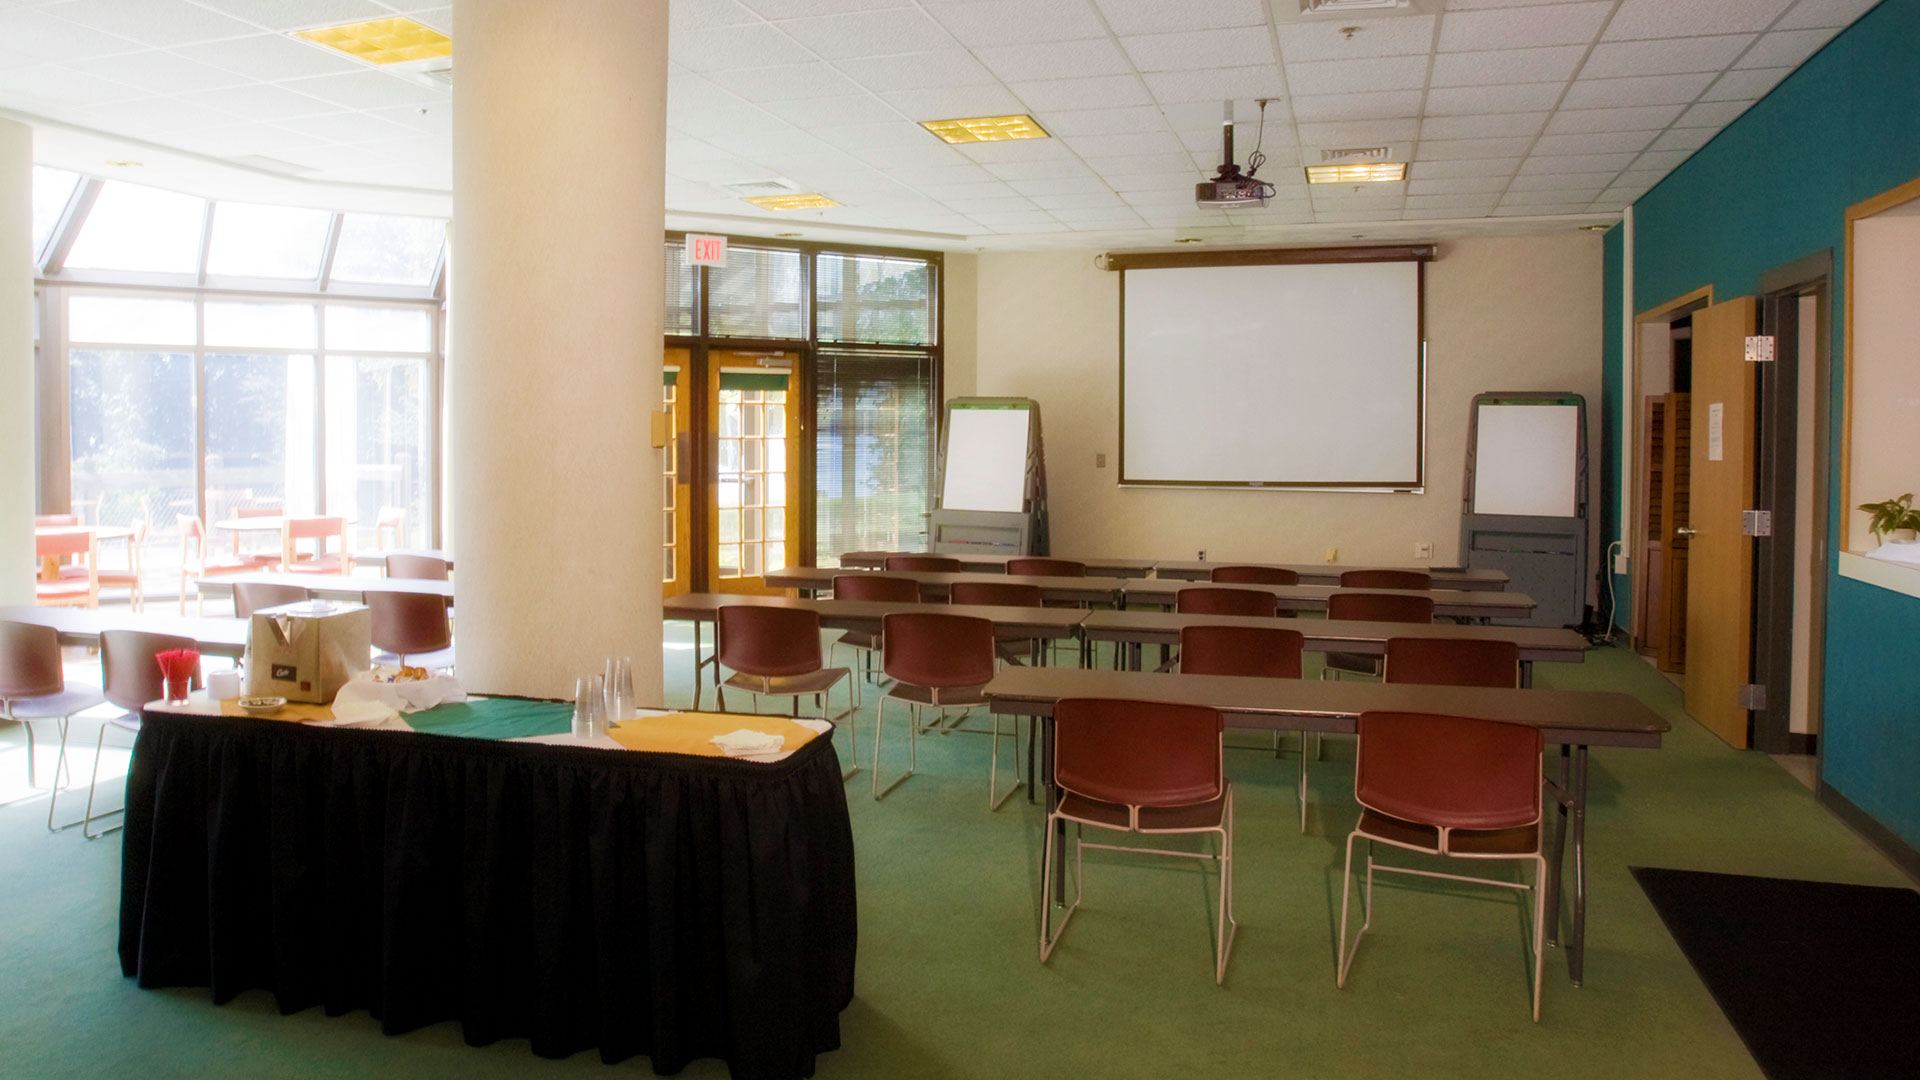 The KBS Terrace Room, set up for a class.